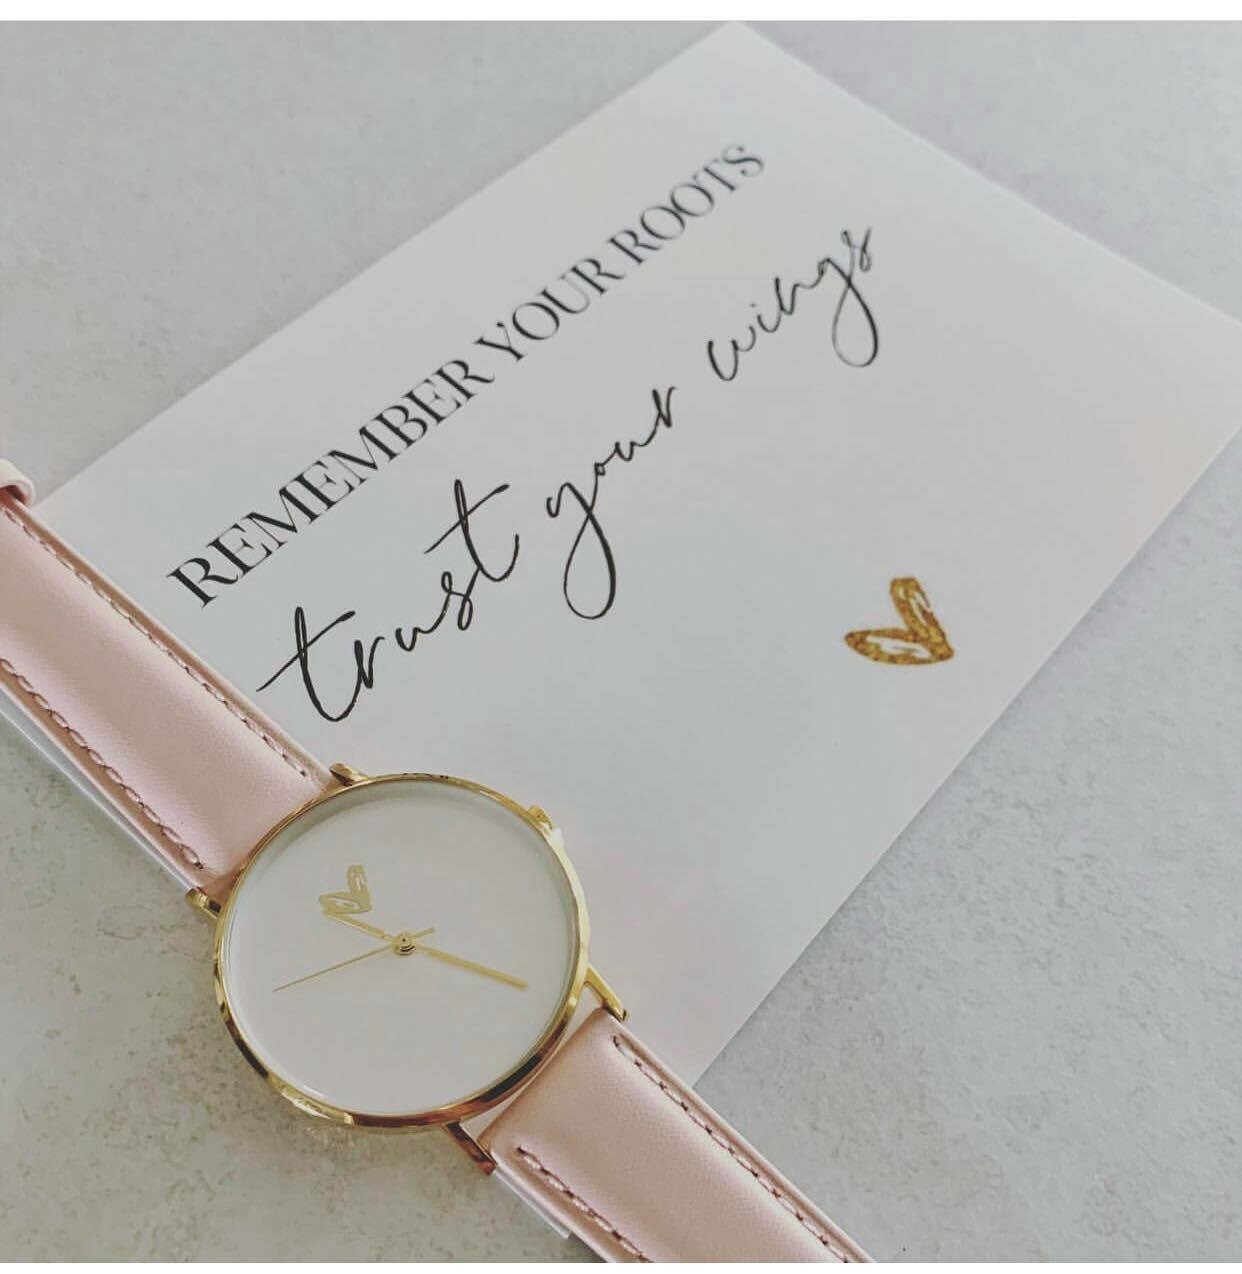 Simple gold watches